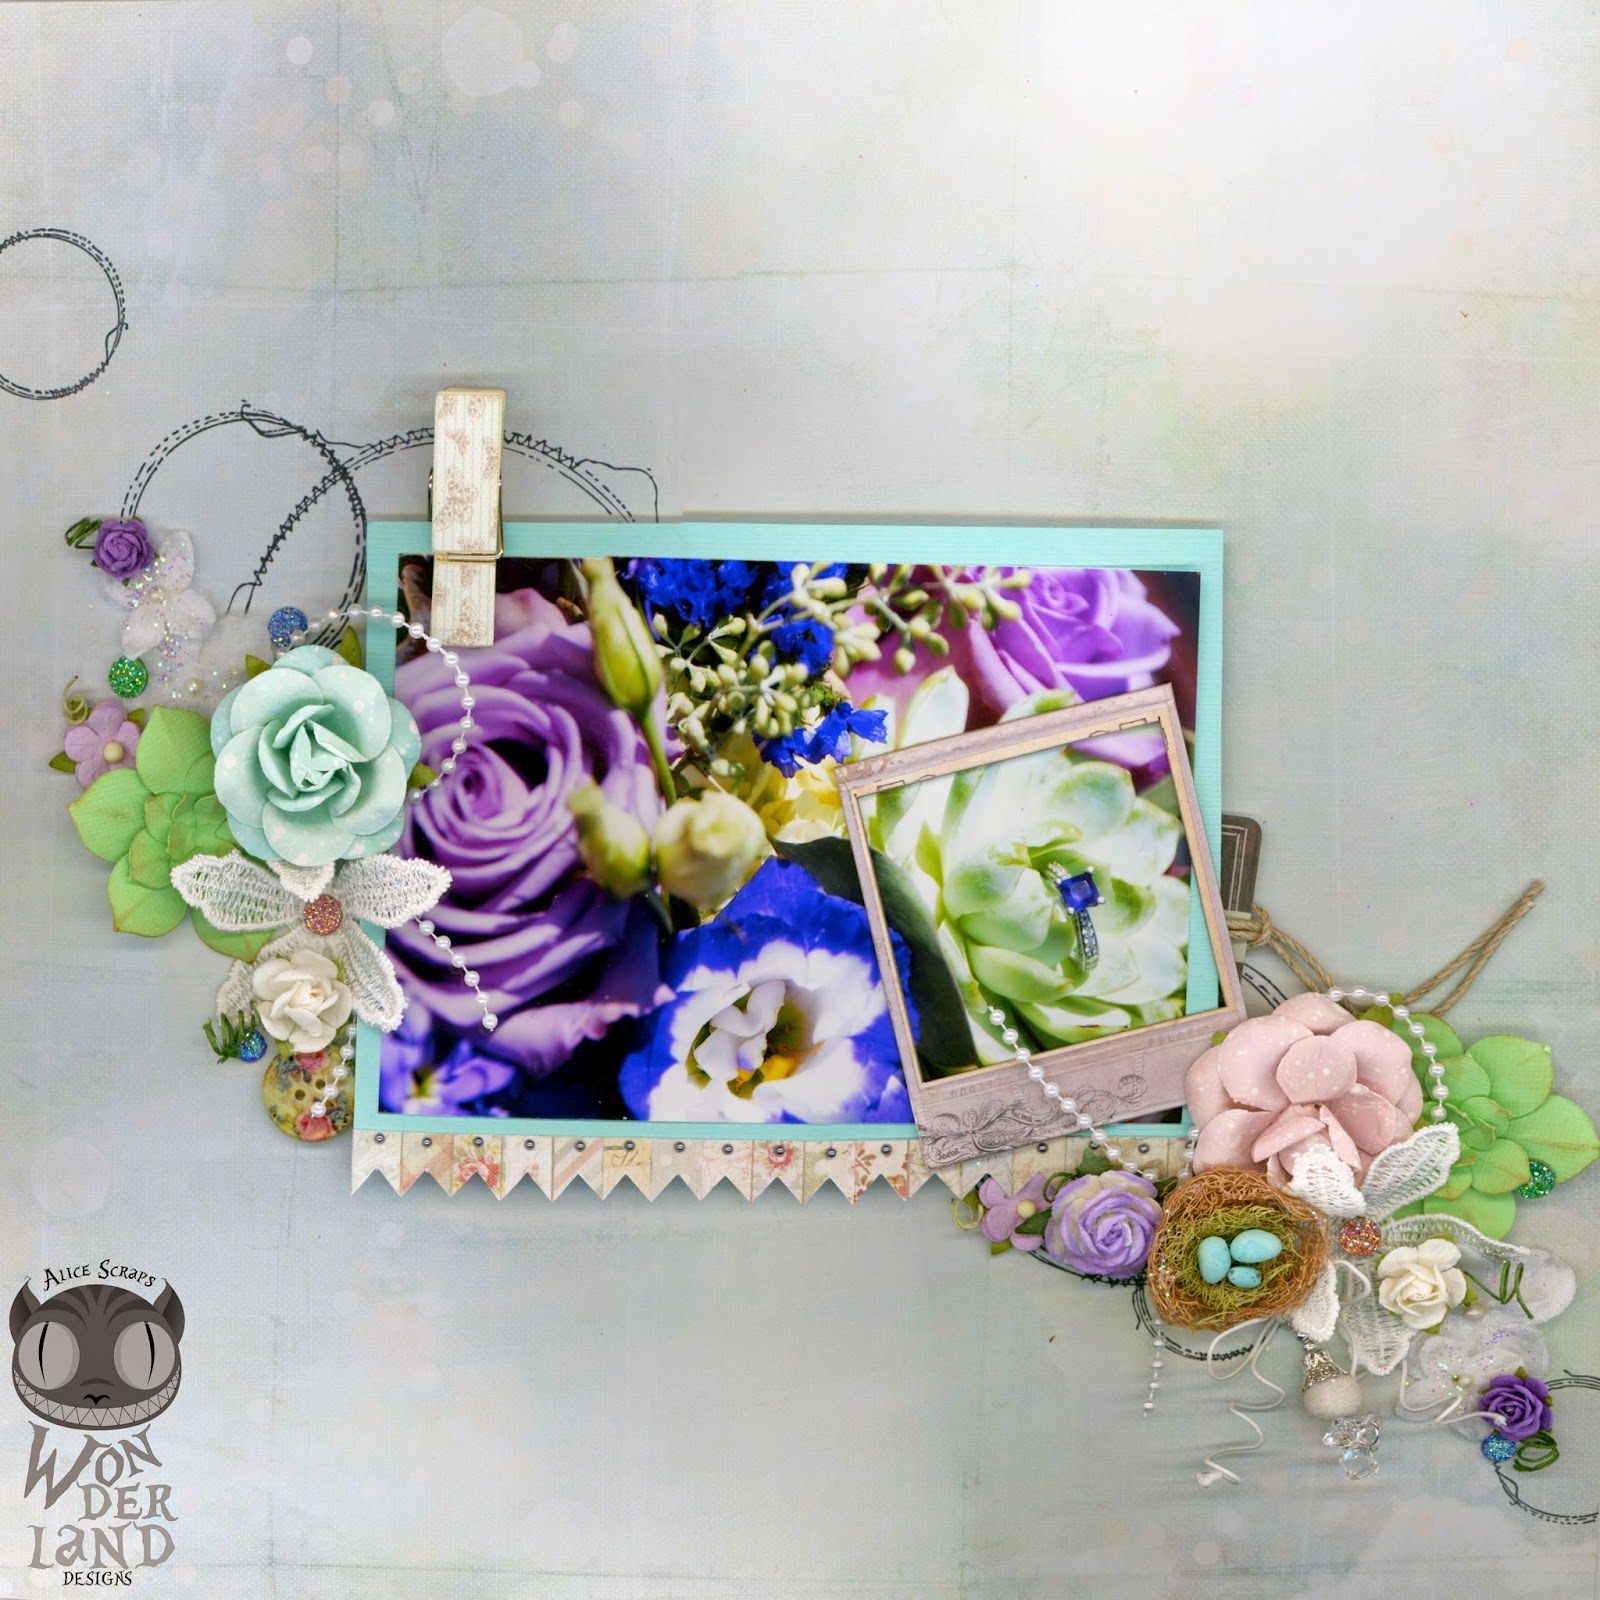 Alice Scraps Wonderland, scrapbook, scrapbooking, wedding, bouquet, flowers, ring, love, Prima Marketing, Special Delivery Box, stamping, succulents, gems, Bazzill cardstock